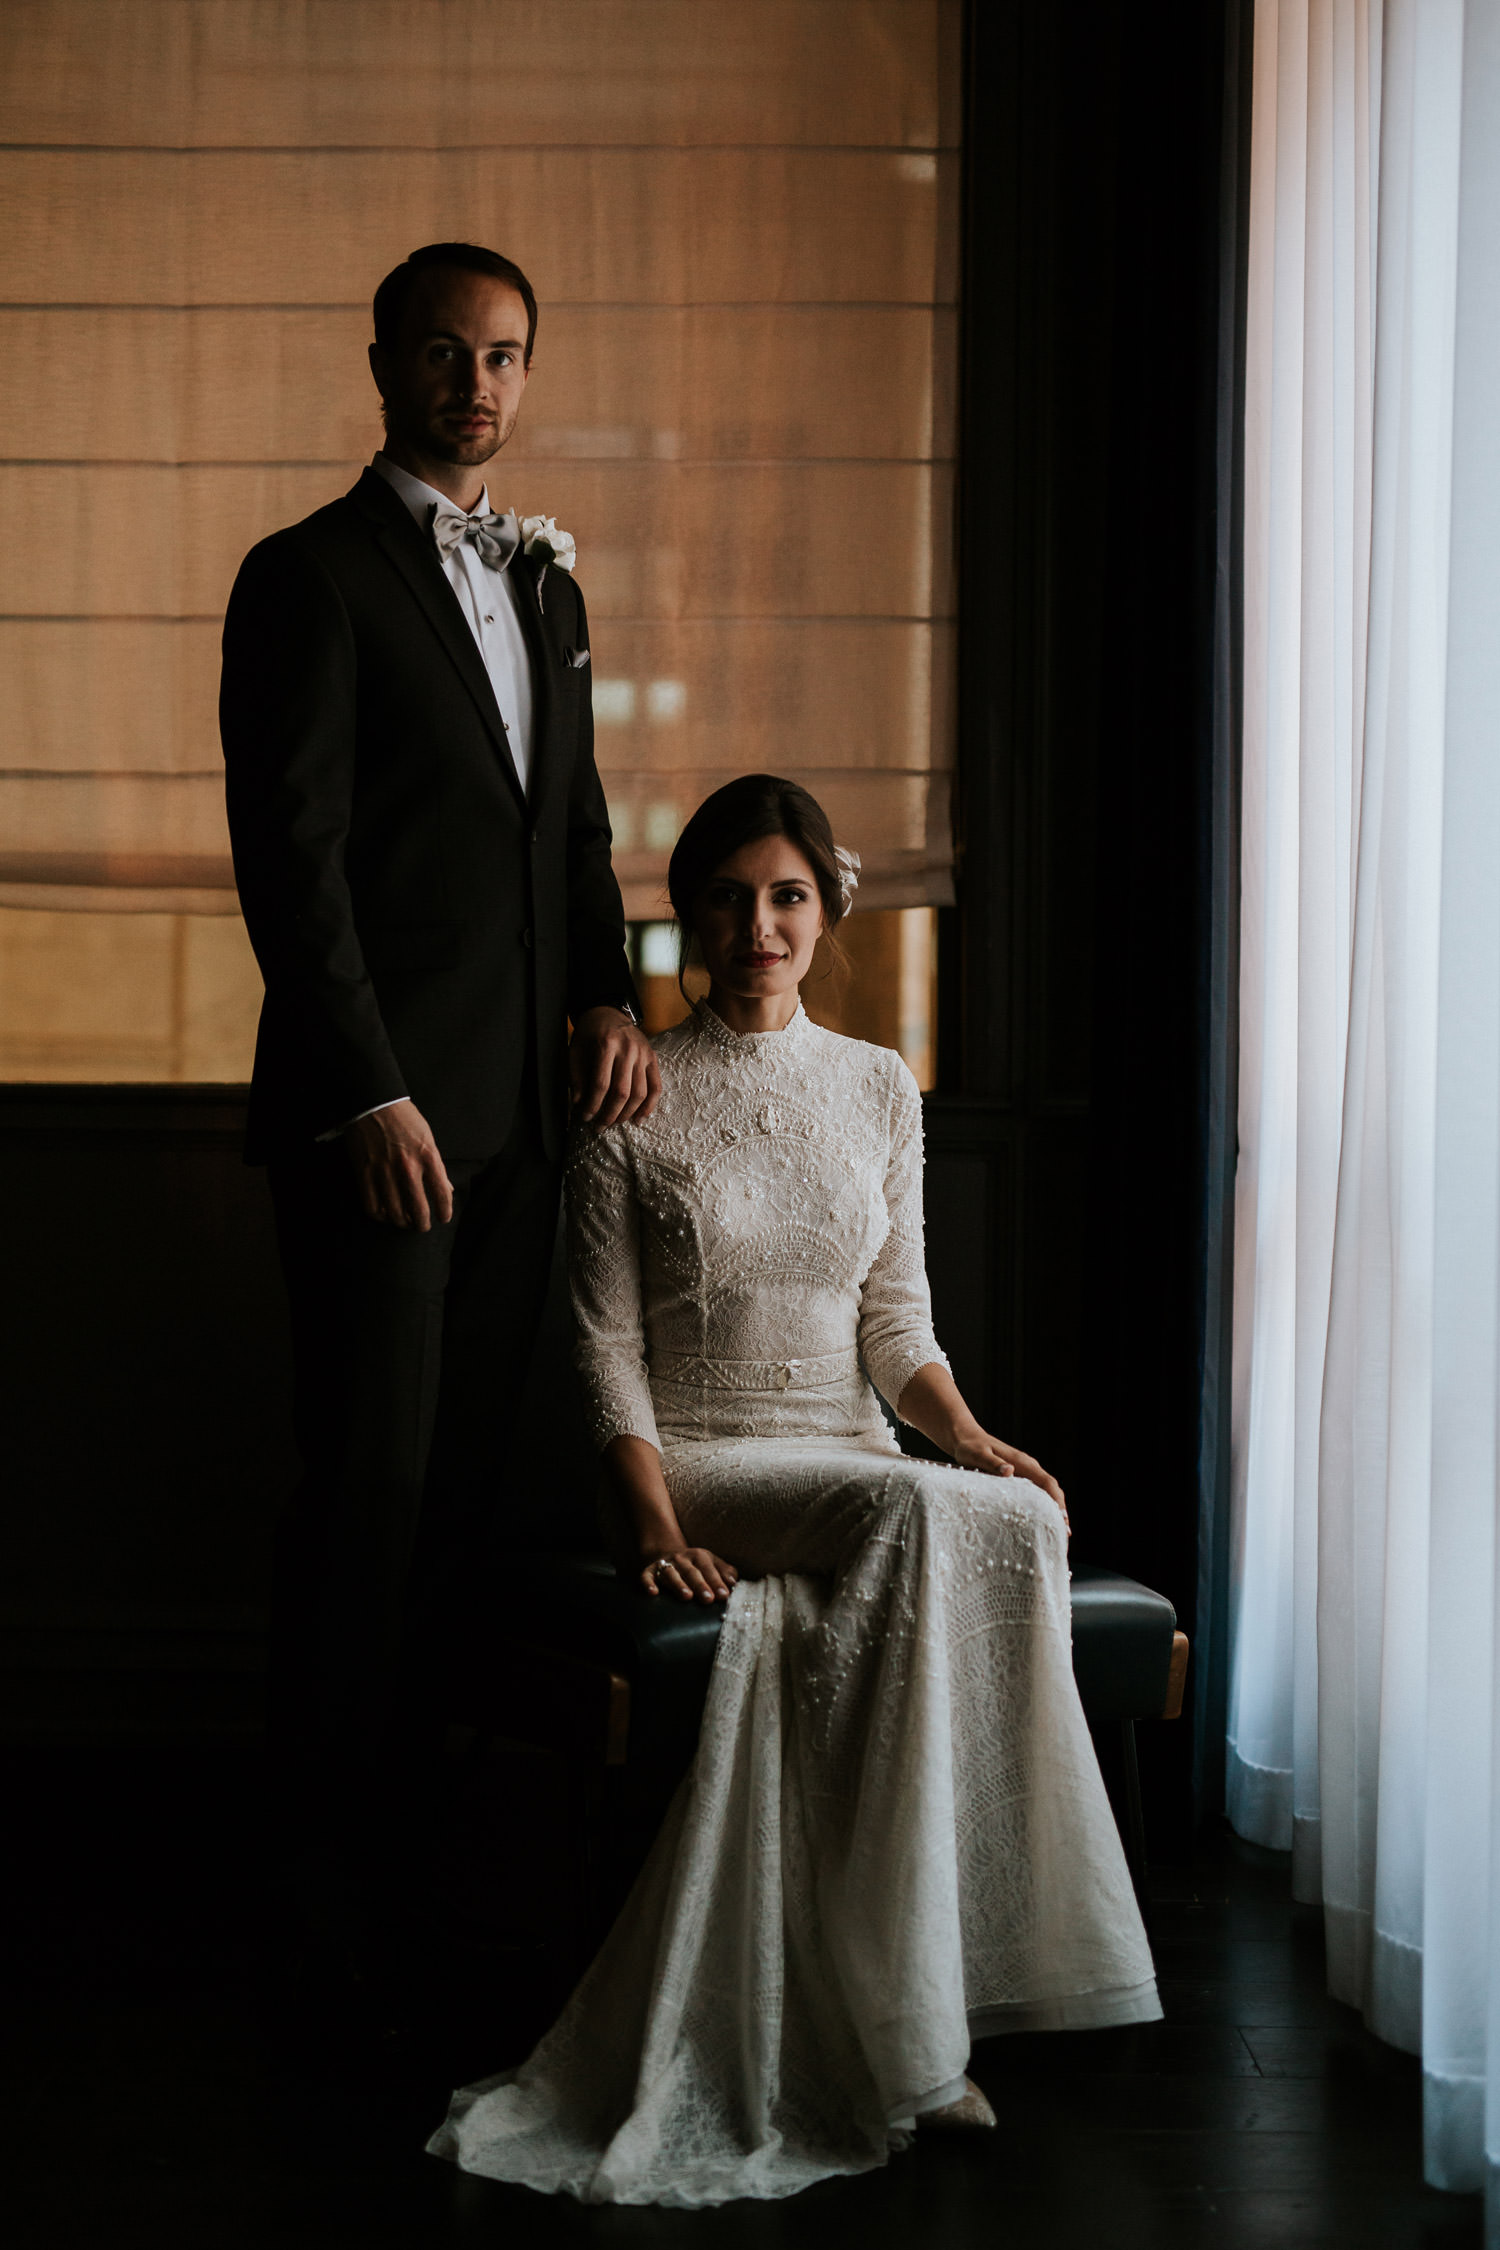 classic portrait of the bride and groom taken at the gray hotel in downtown Chicago